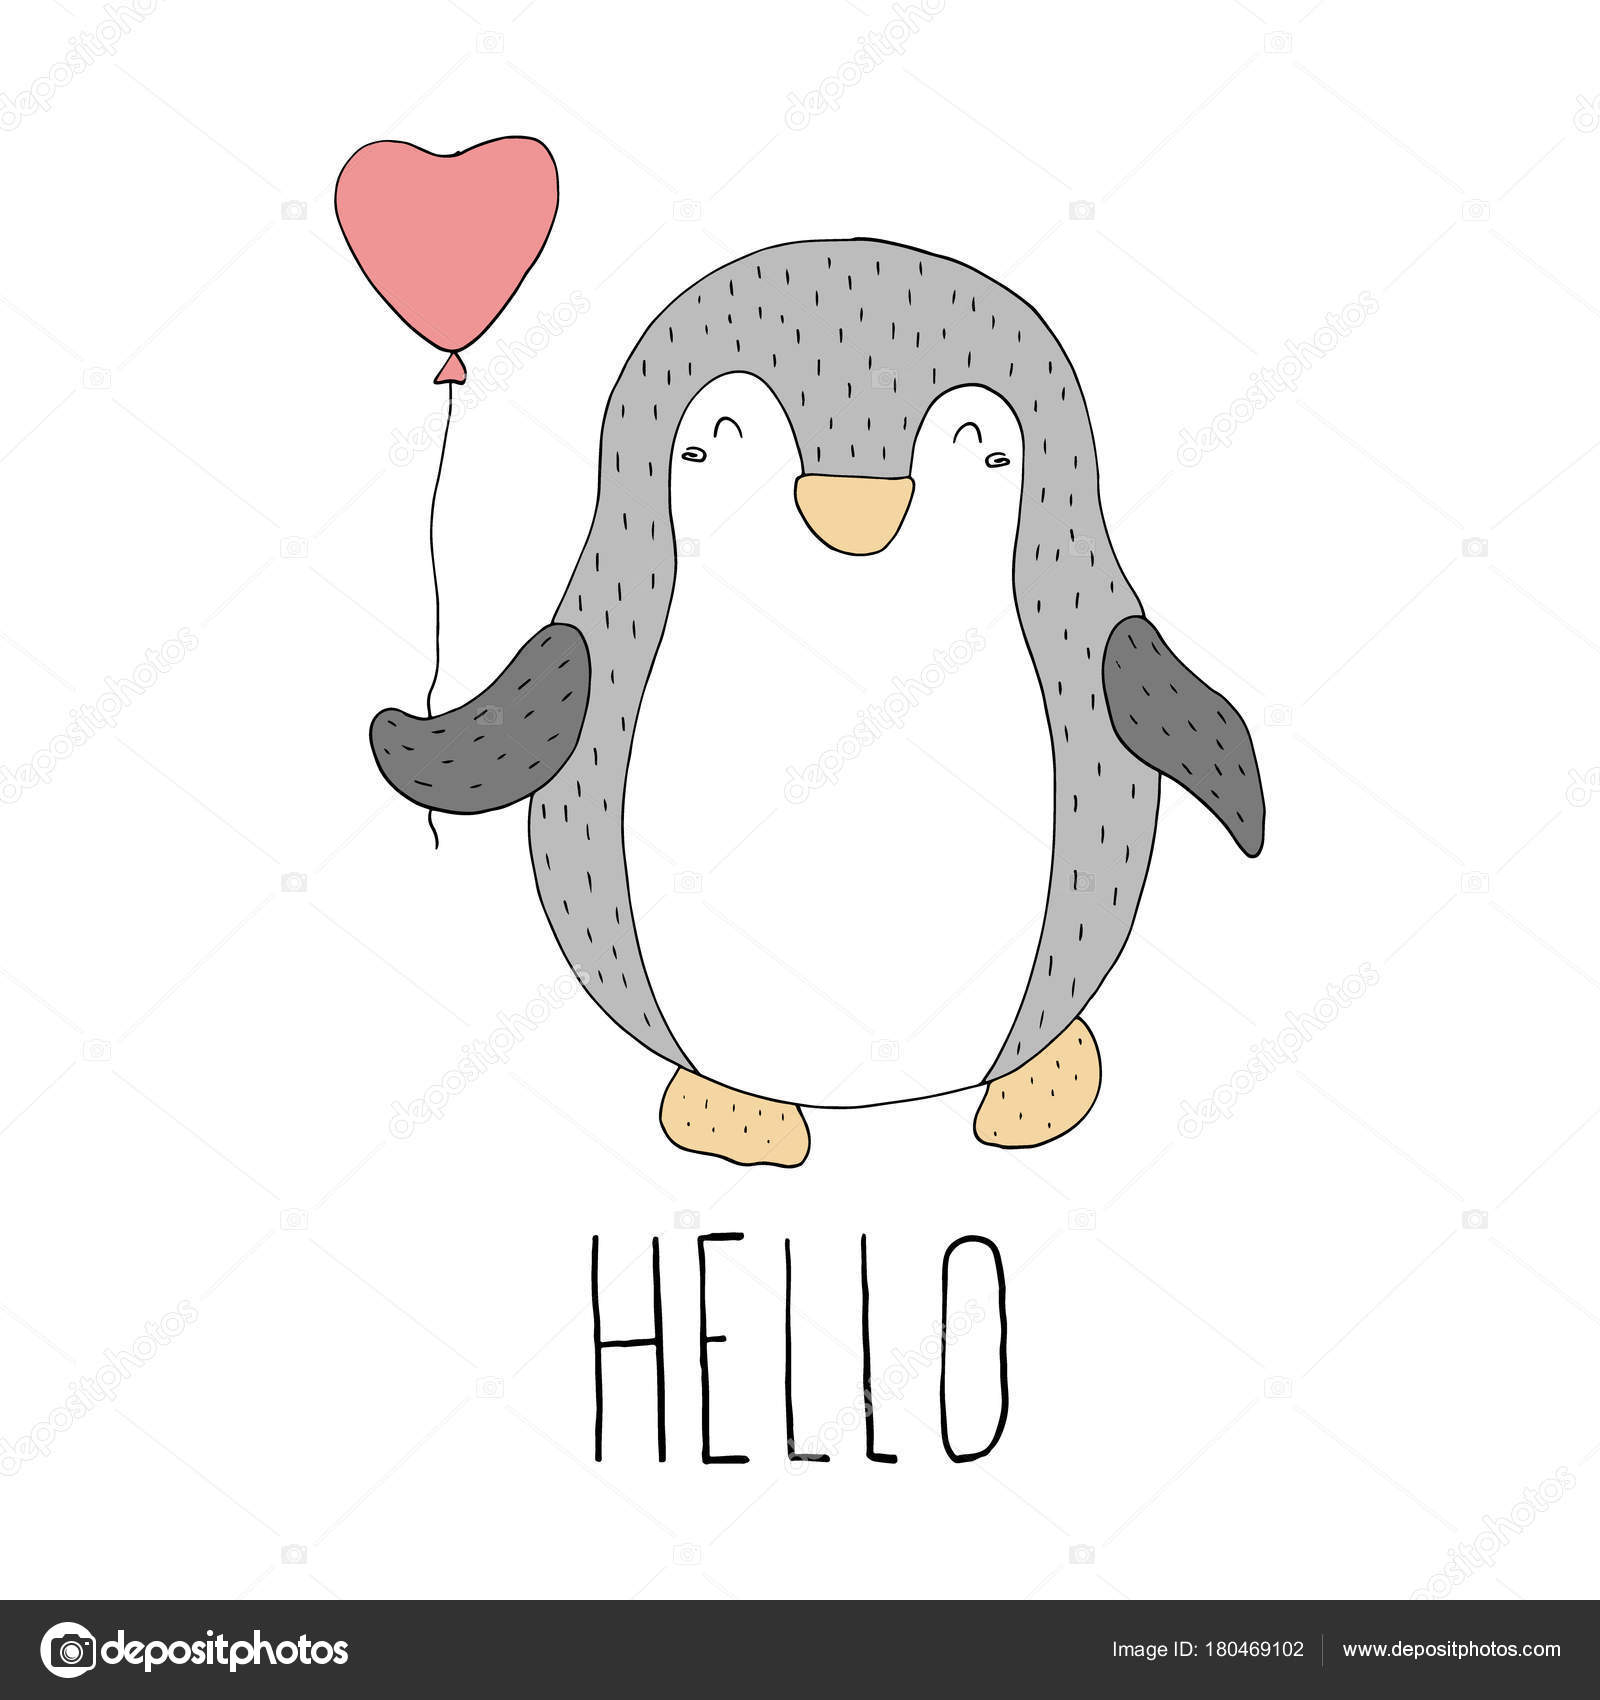 photograph regarding Penguin Template Printable named Superhero templates printable Hand drawn example with